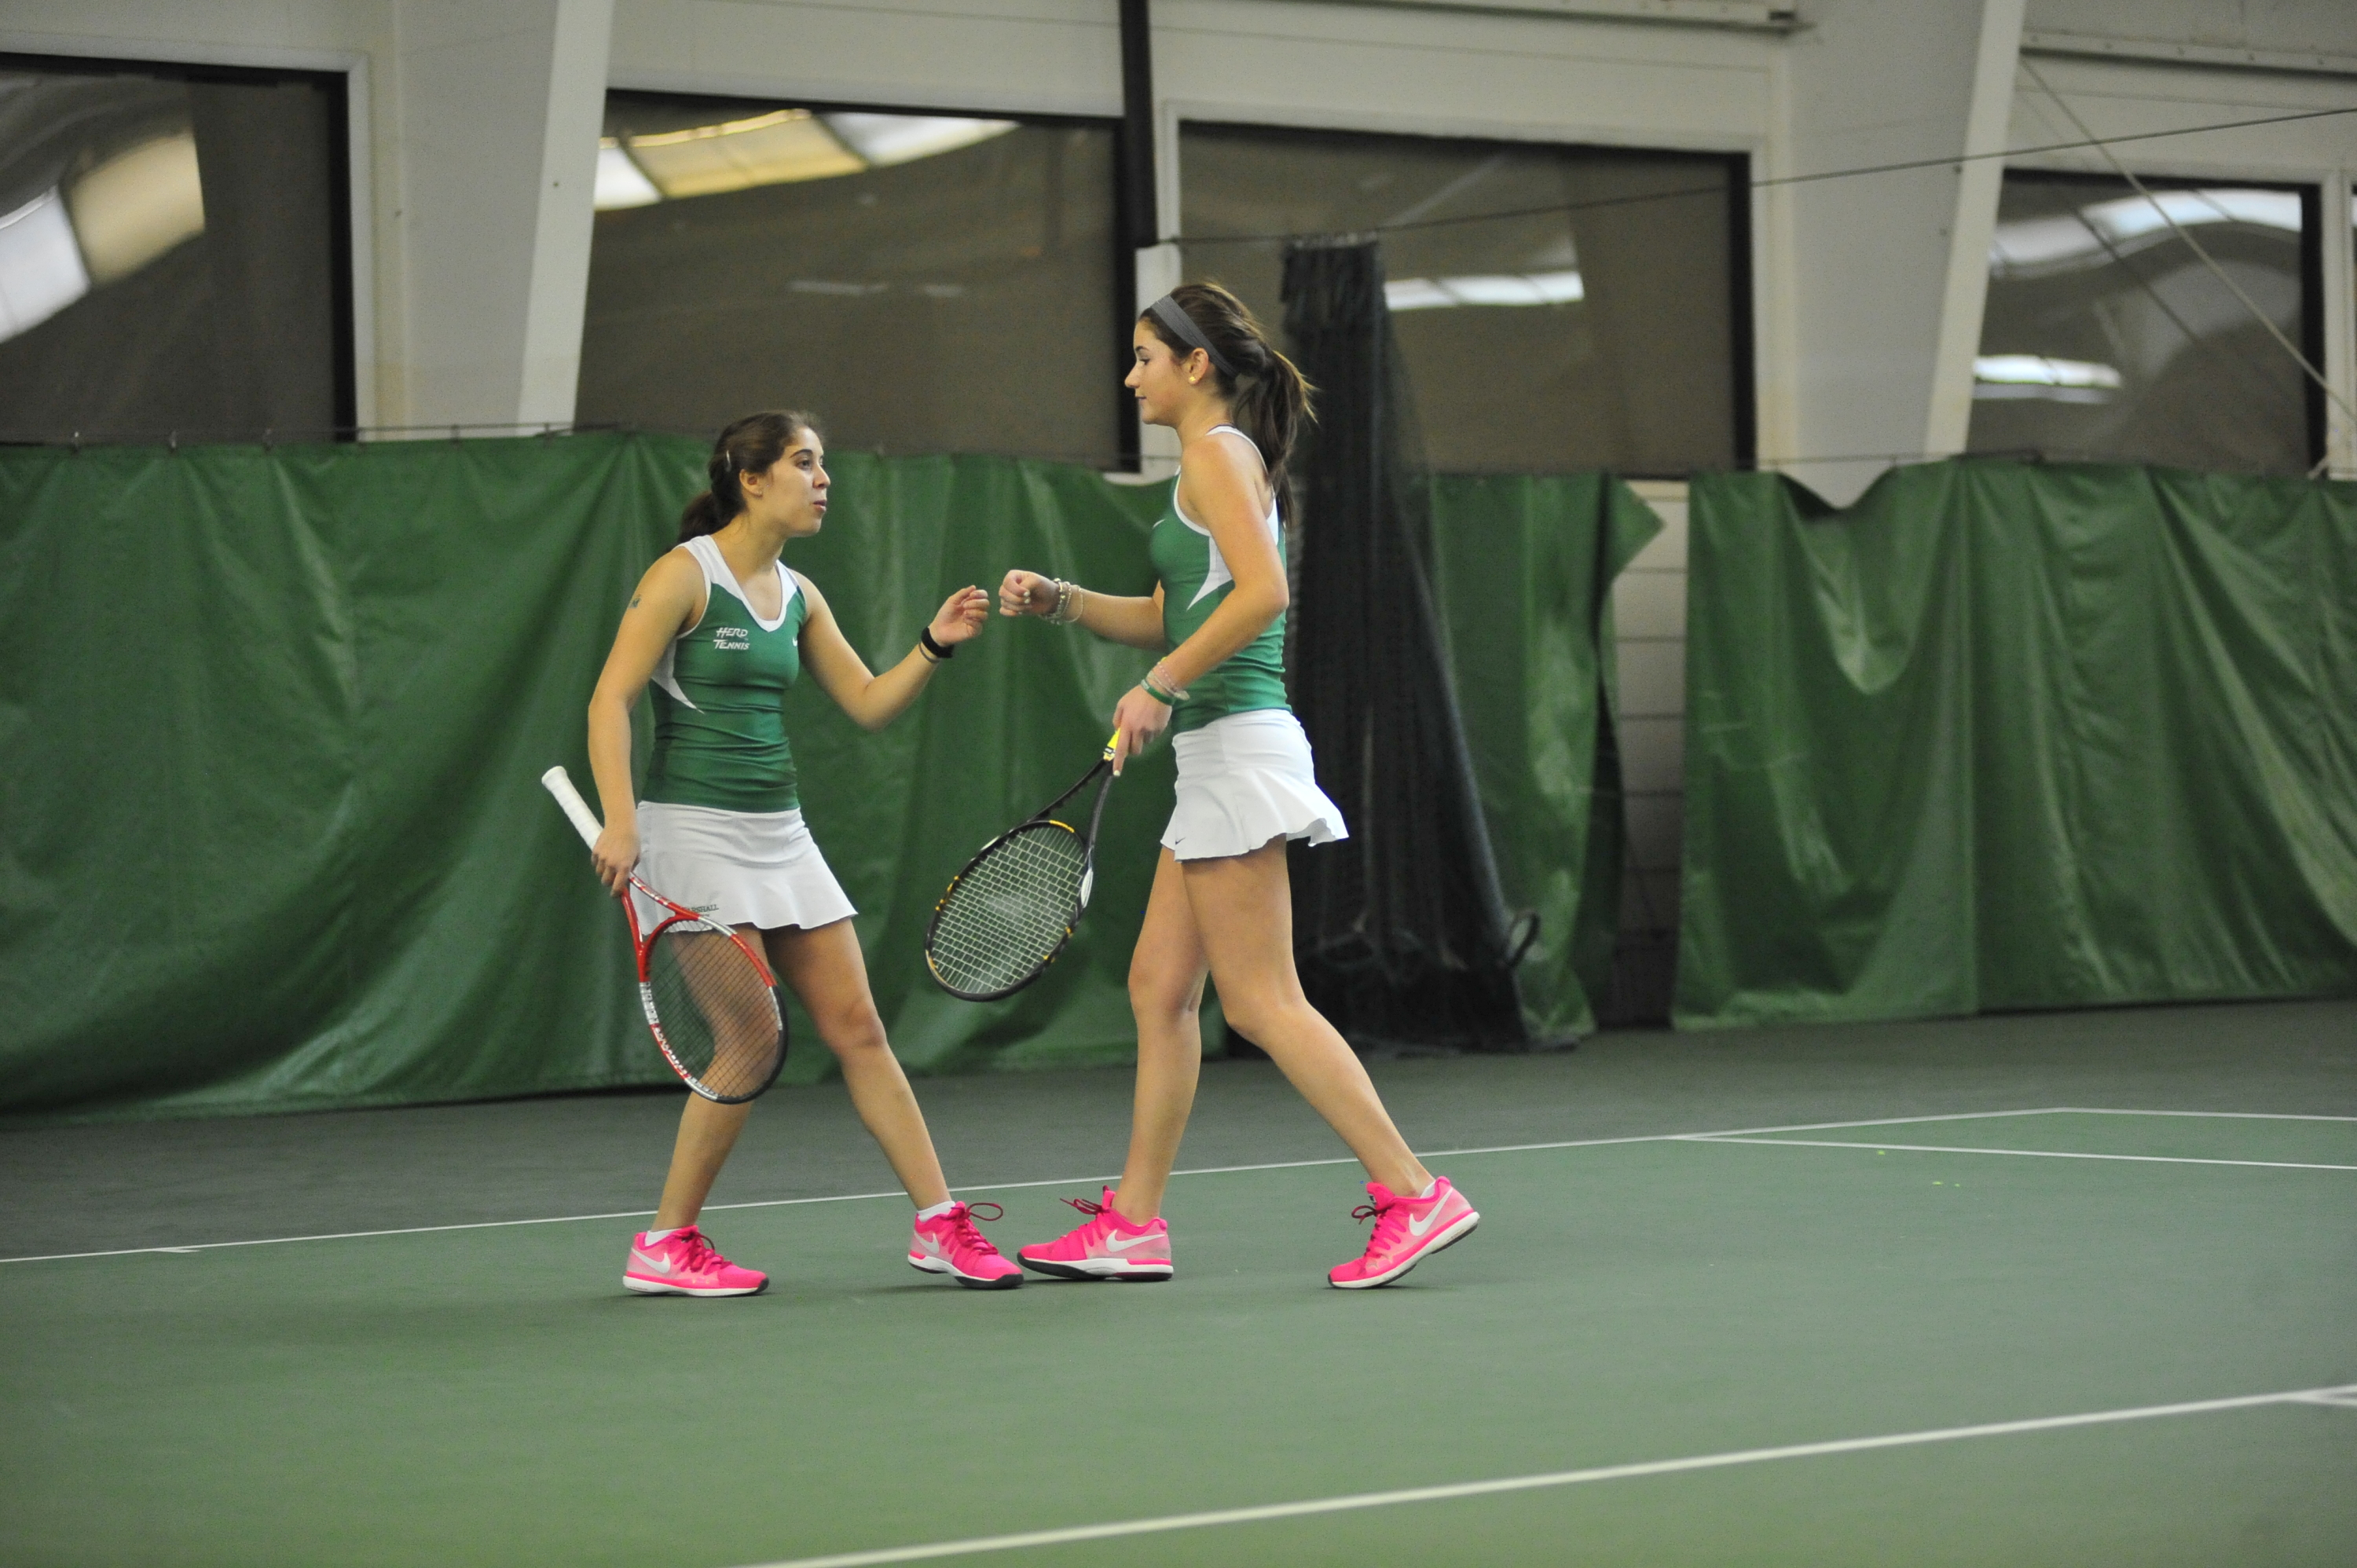 Maddie Silver and Rachael Morales have won 15 consecutive doubles matches during dual match play. The streak dates back to the 2015 season.